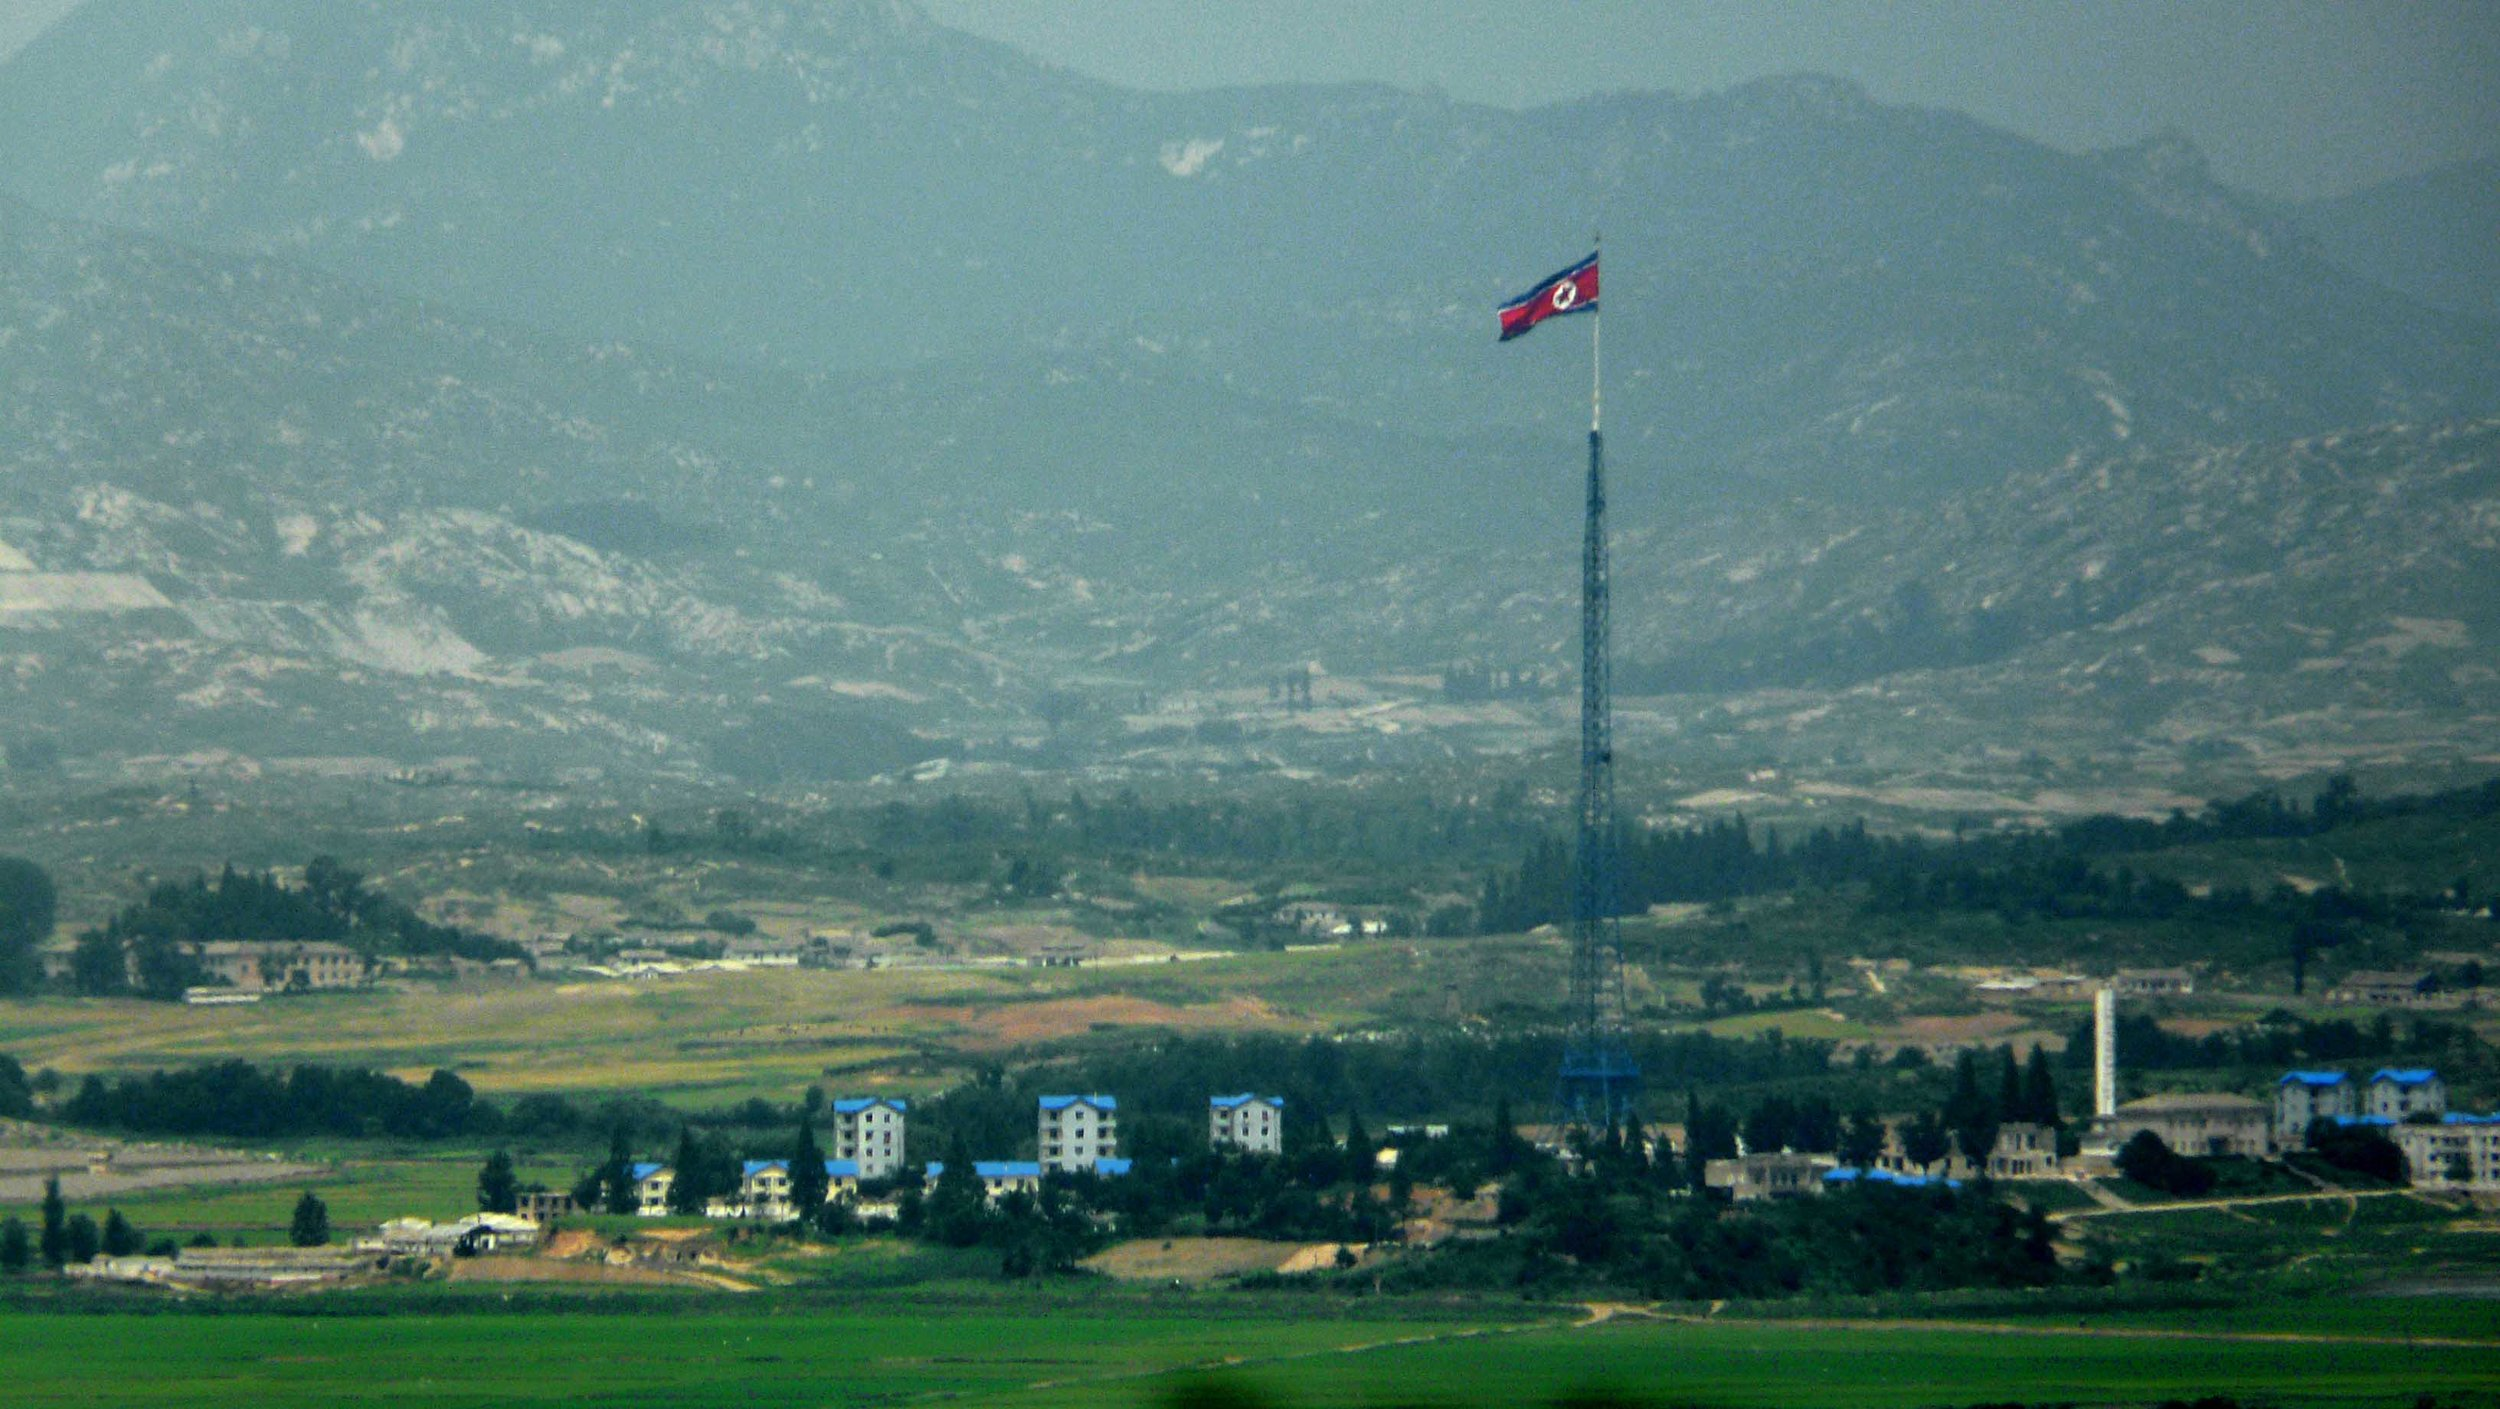 One of the tallest flagpoles in the world is in North Korea  (Photo by Kimmo Räisänen)